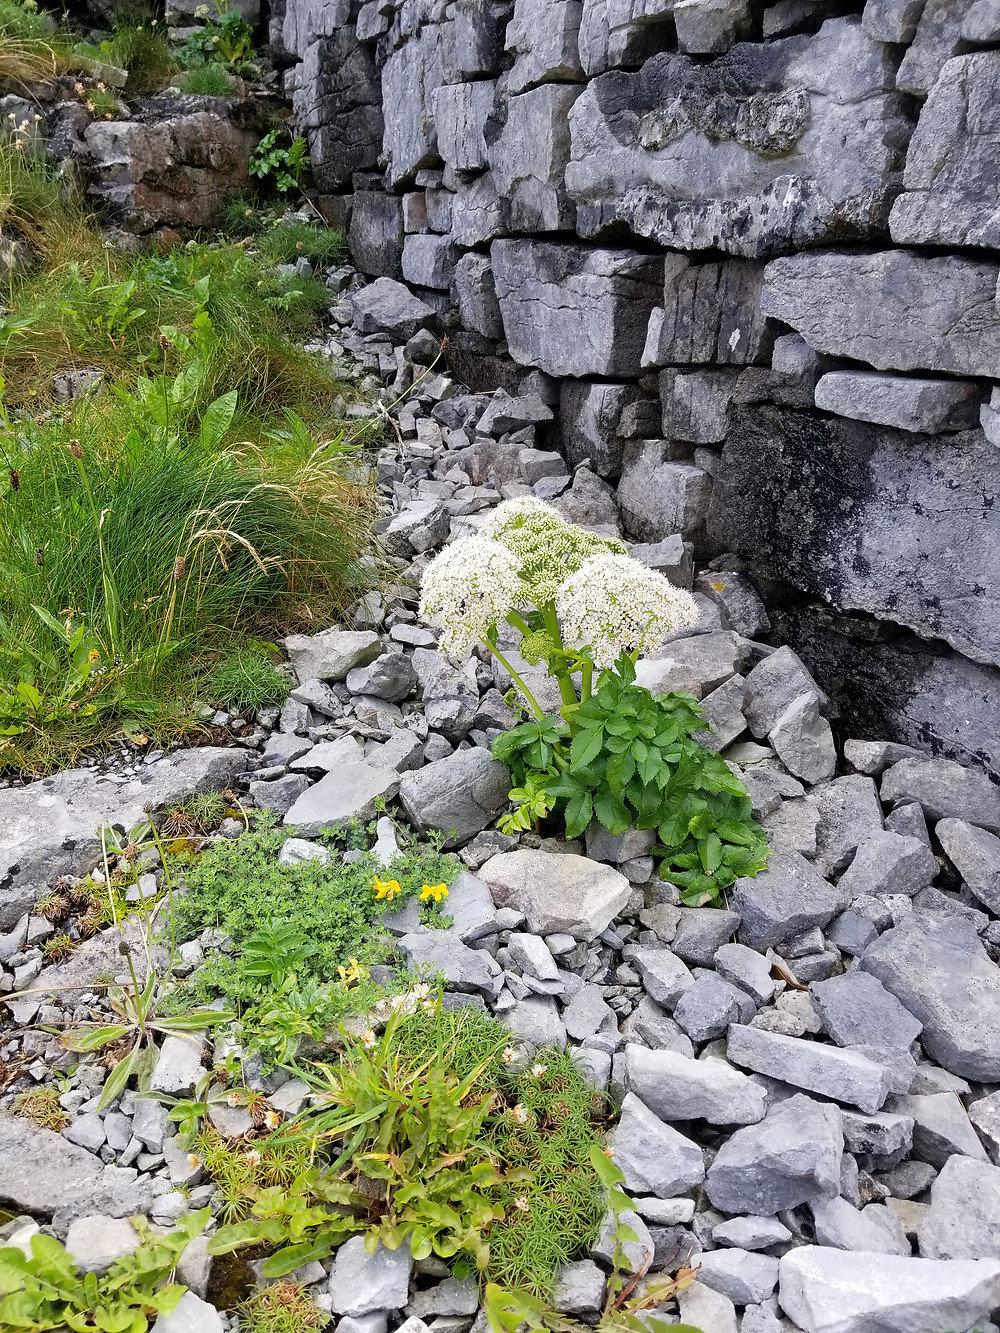 Inishmore Island, herbs angelica, plantain, dandelion and thyme by bronze age ruins of Dun Aonghasa